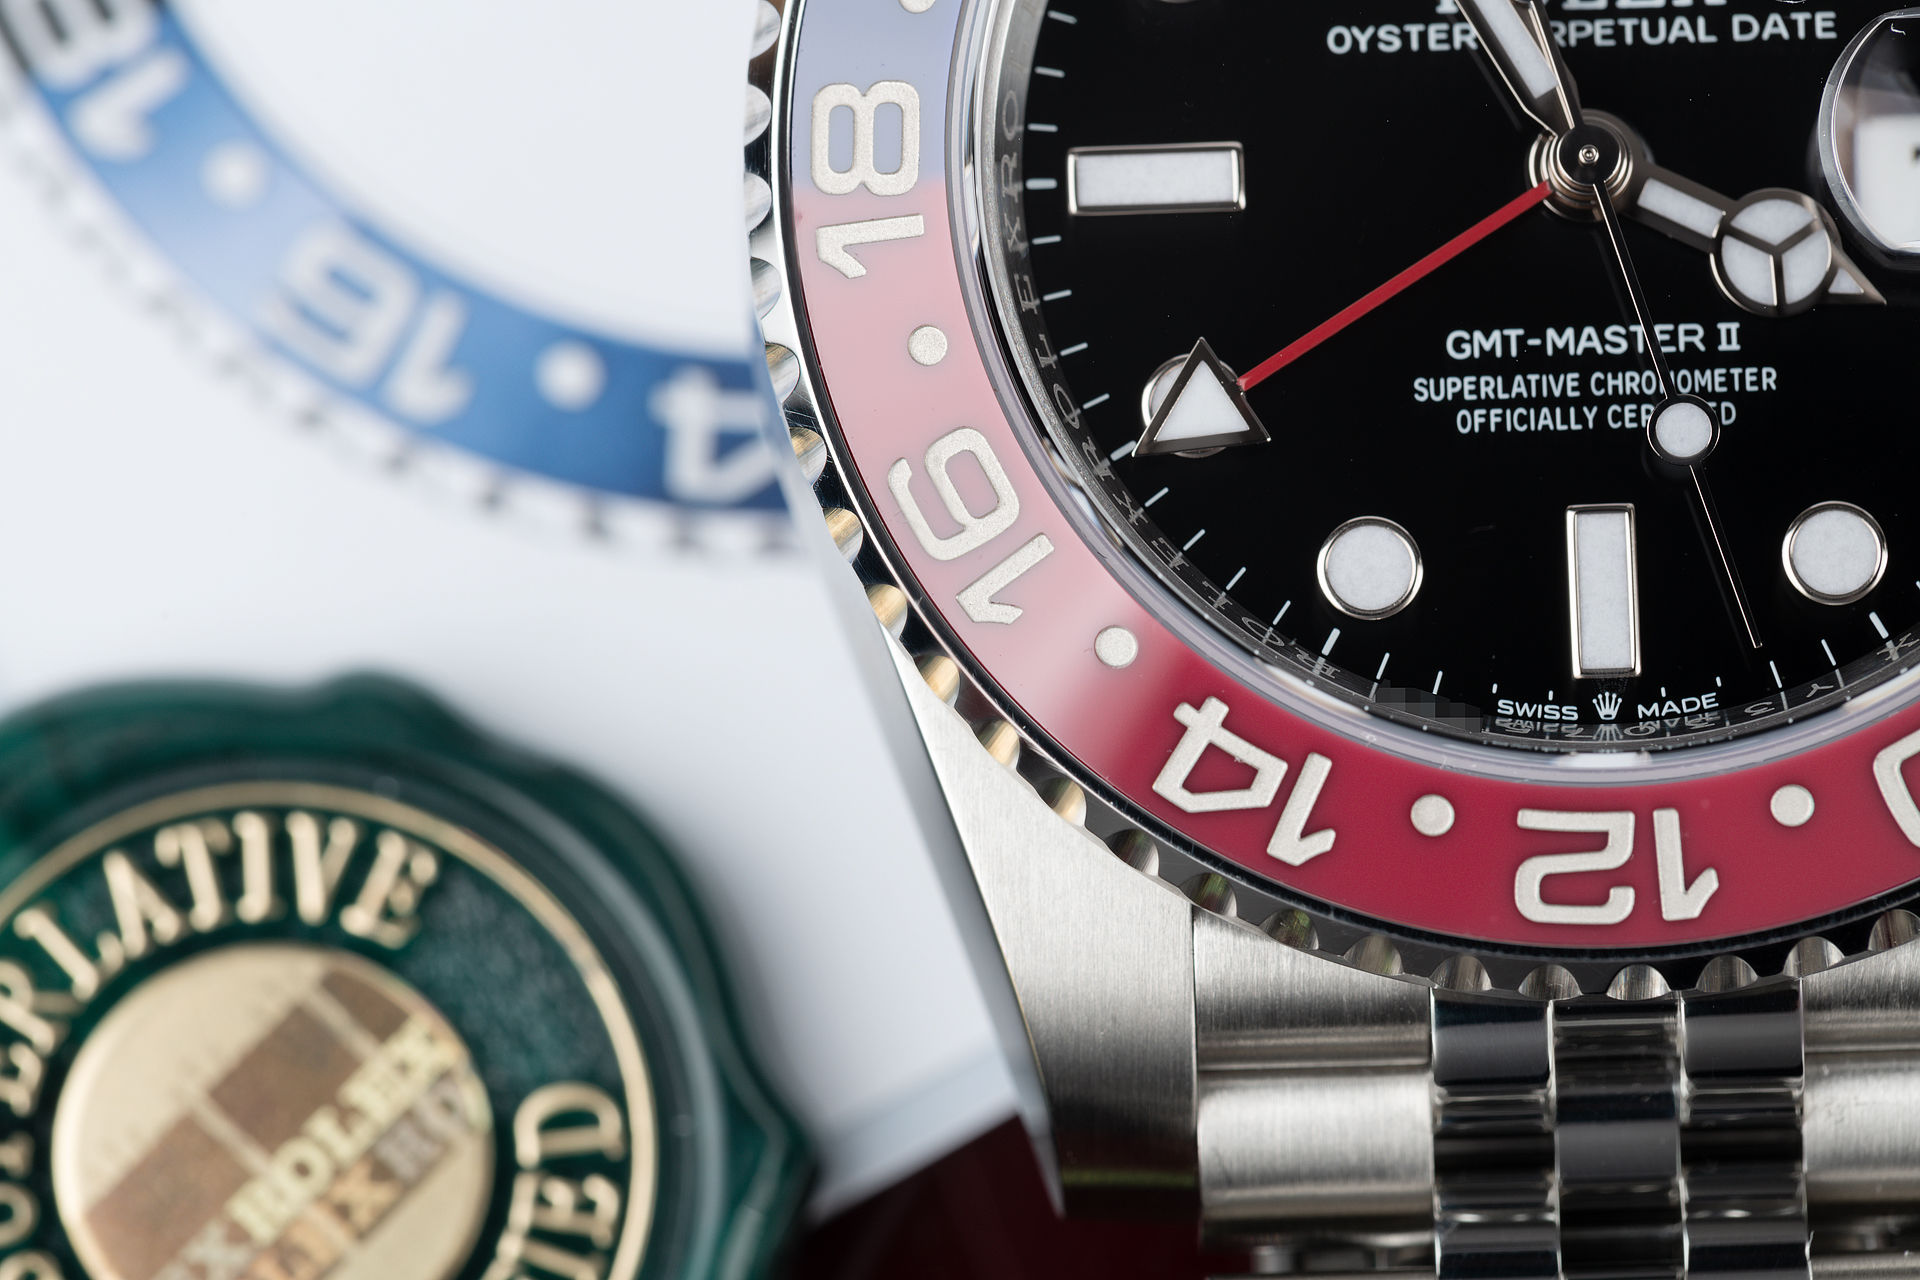 ref 126710BLRO | Pepsi 'Full Set 5 Year Warranty' | Rolex GMT-Master II